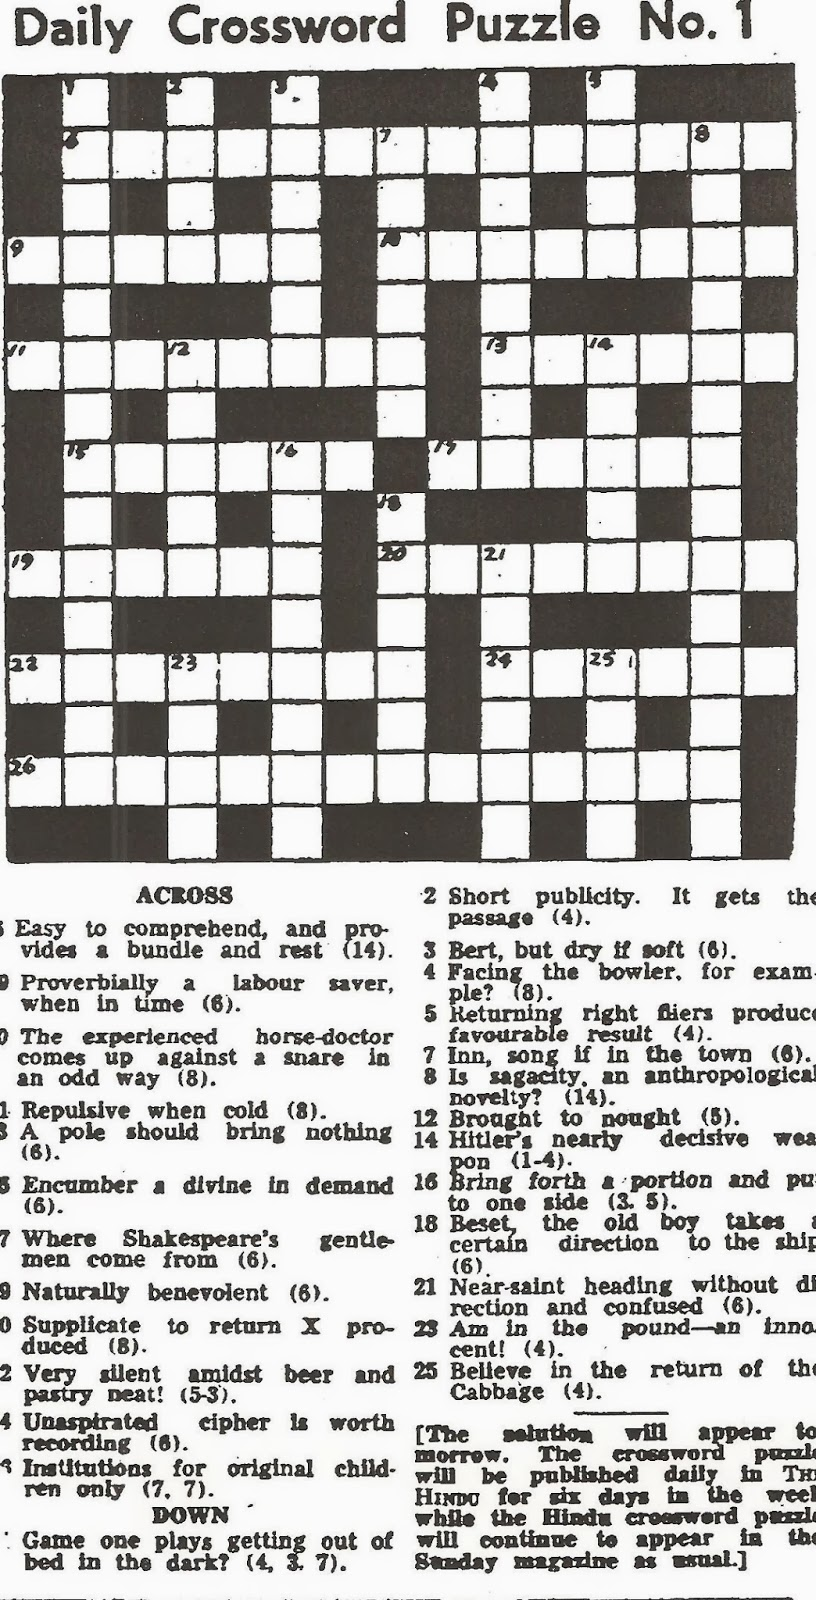 Special Daily Crossword Puzzle No 1 Now THC 15 Feb 1971